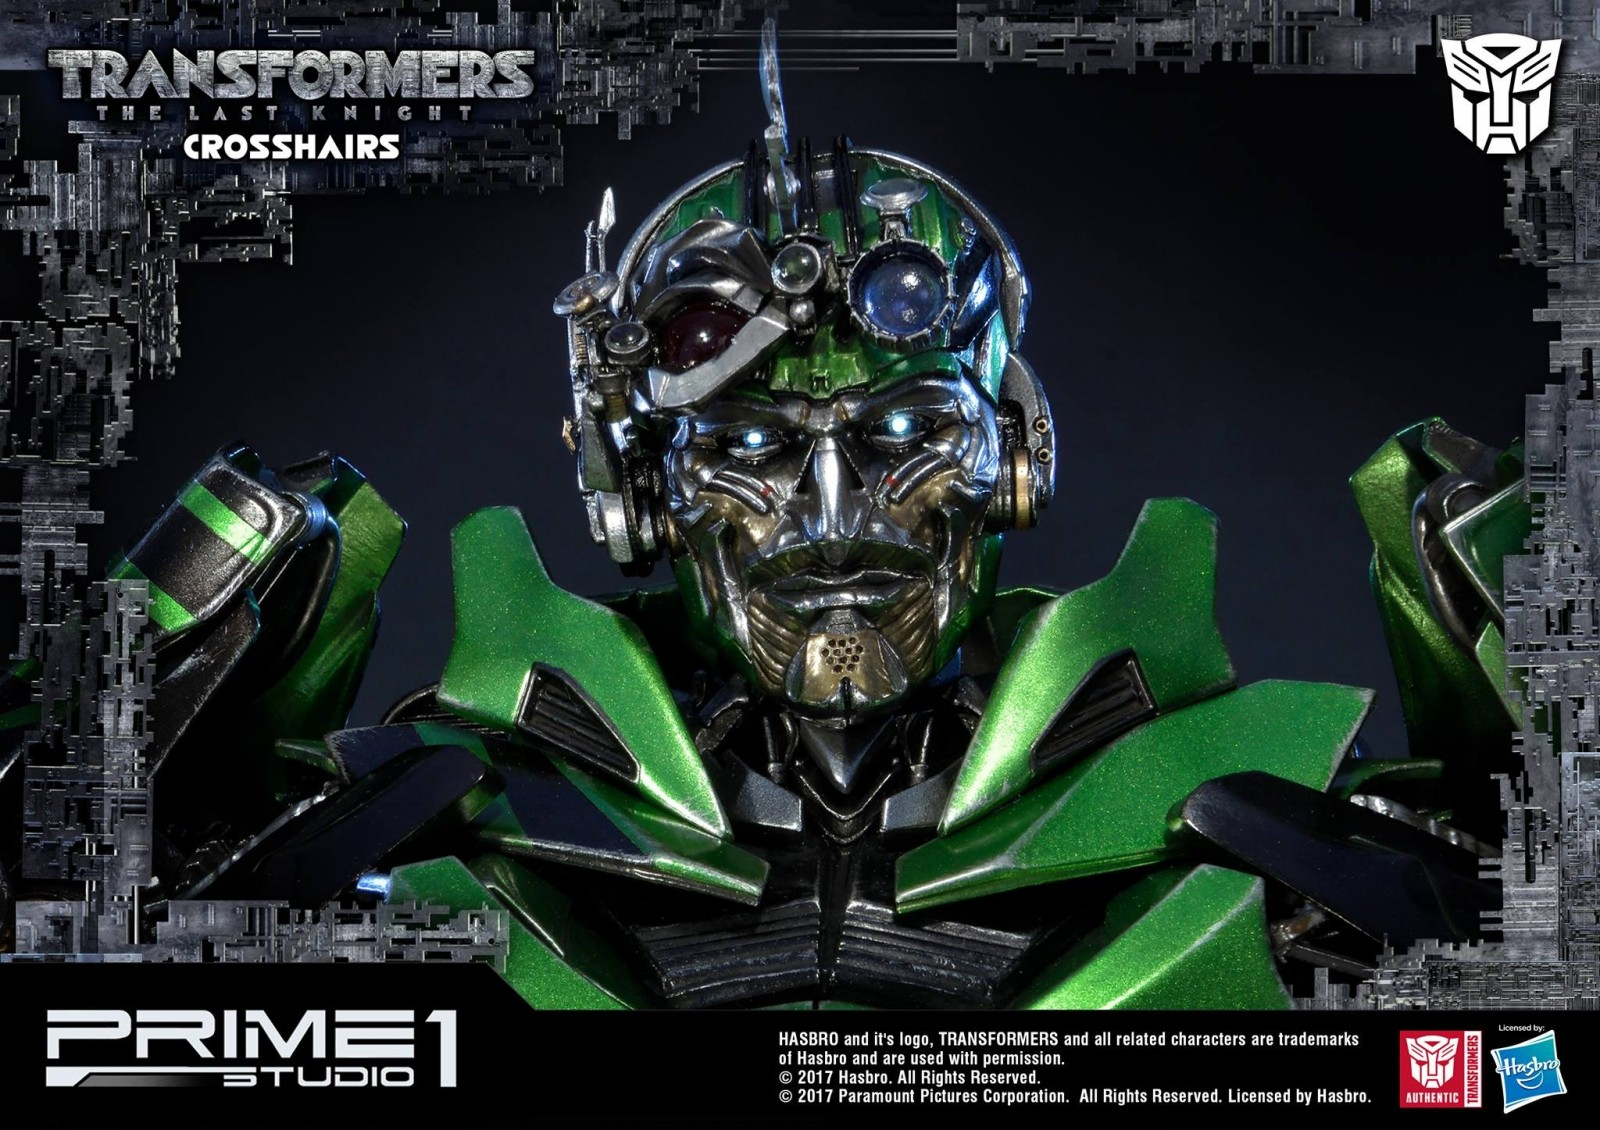 Transformers News: Prime 1 Studio MMTFM-19 Crosshairs Images